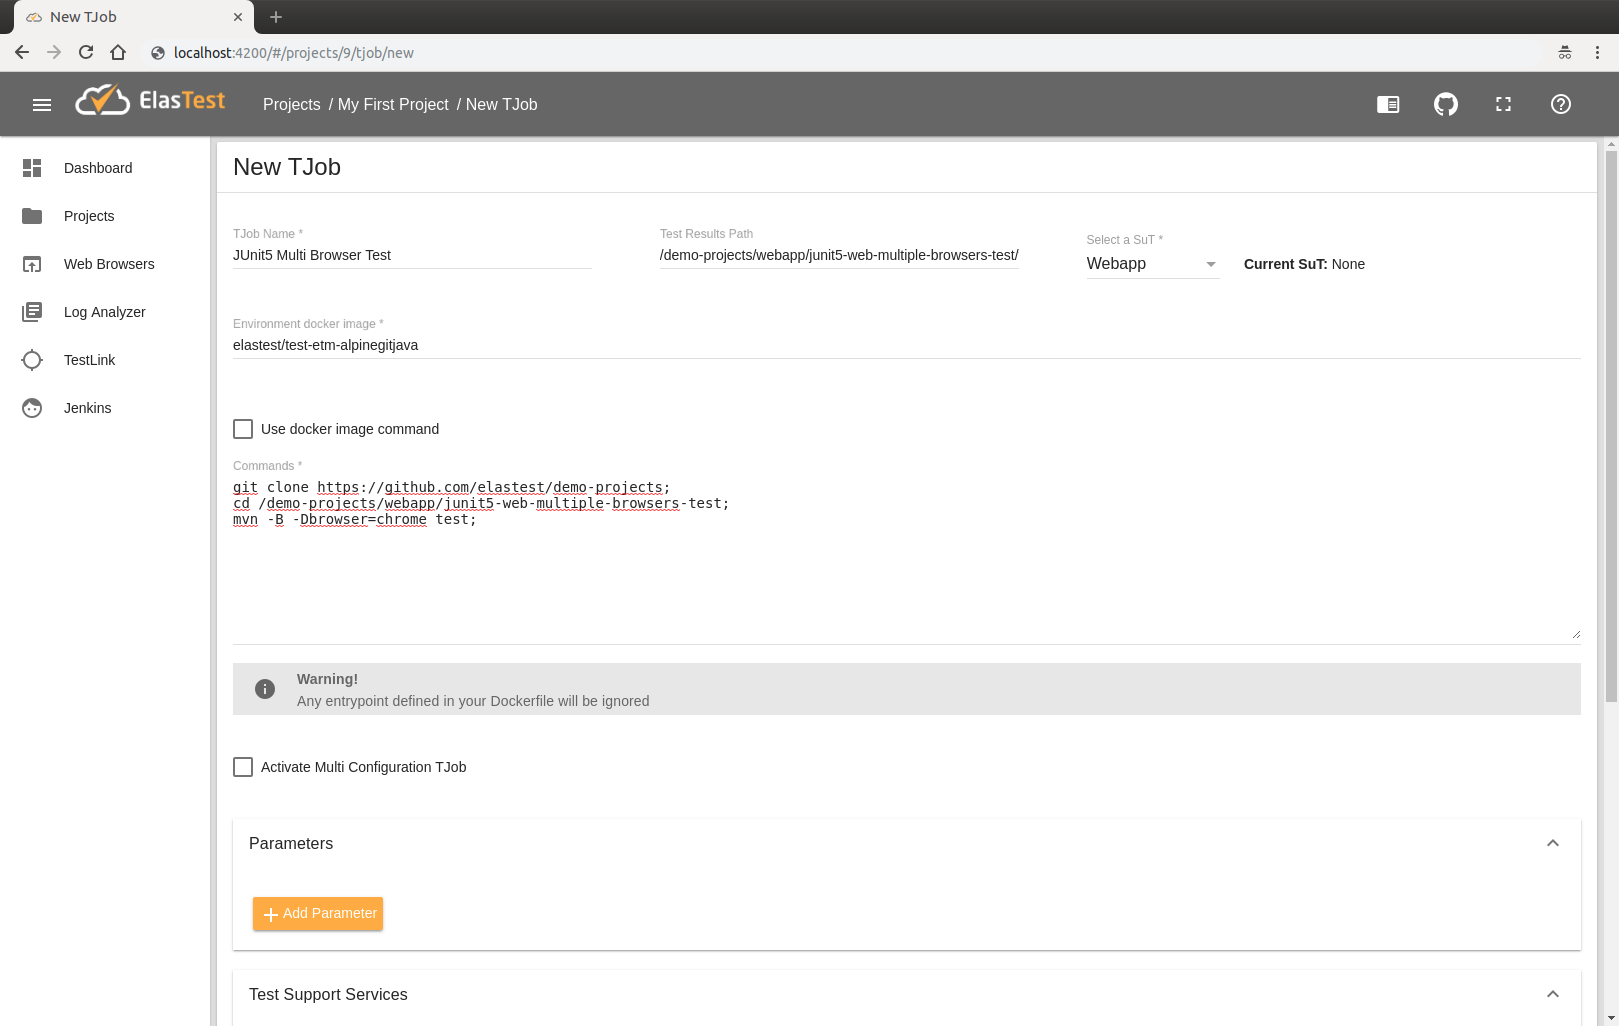 Elastest Documentation - Run en2end tests with Web Browsers